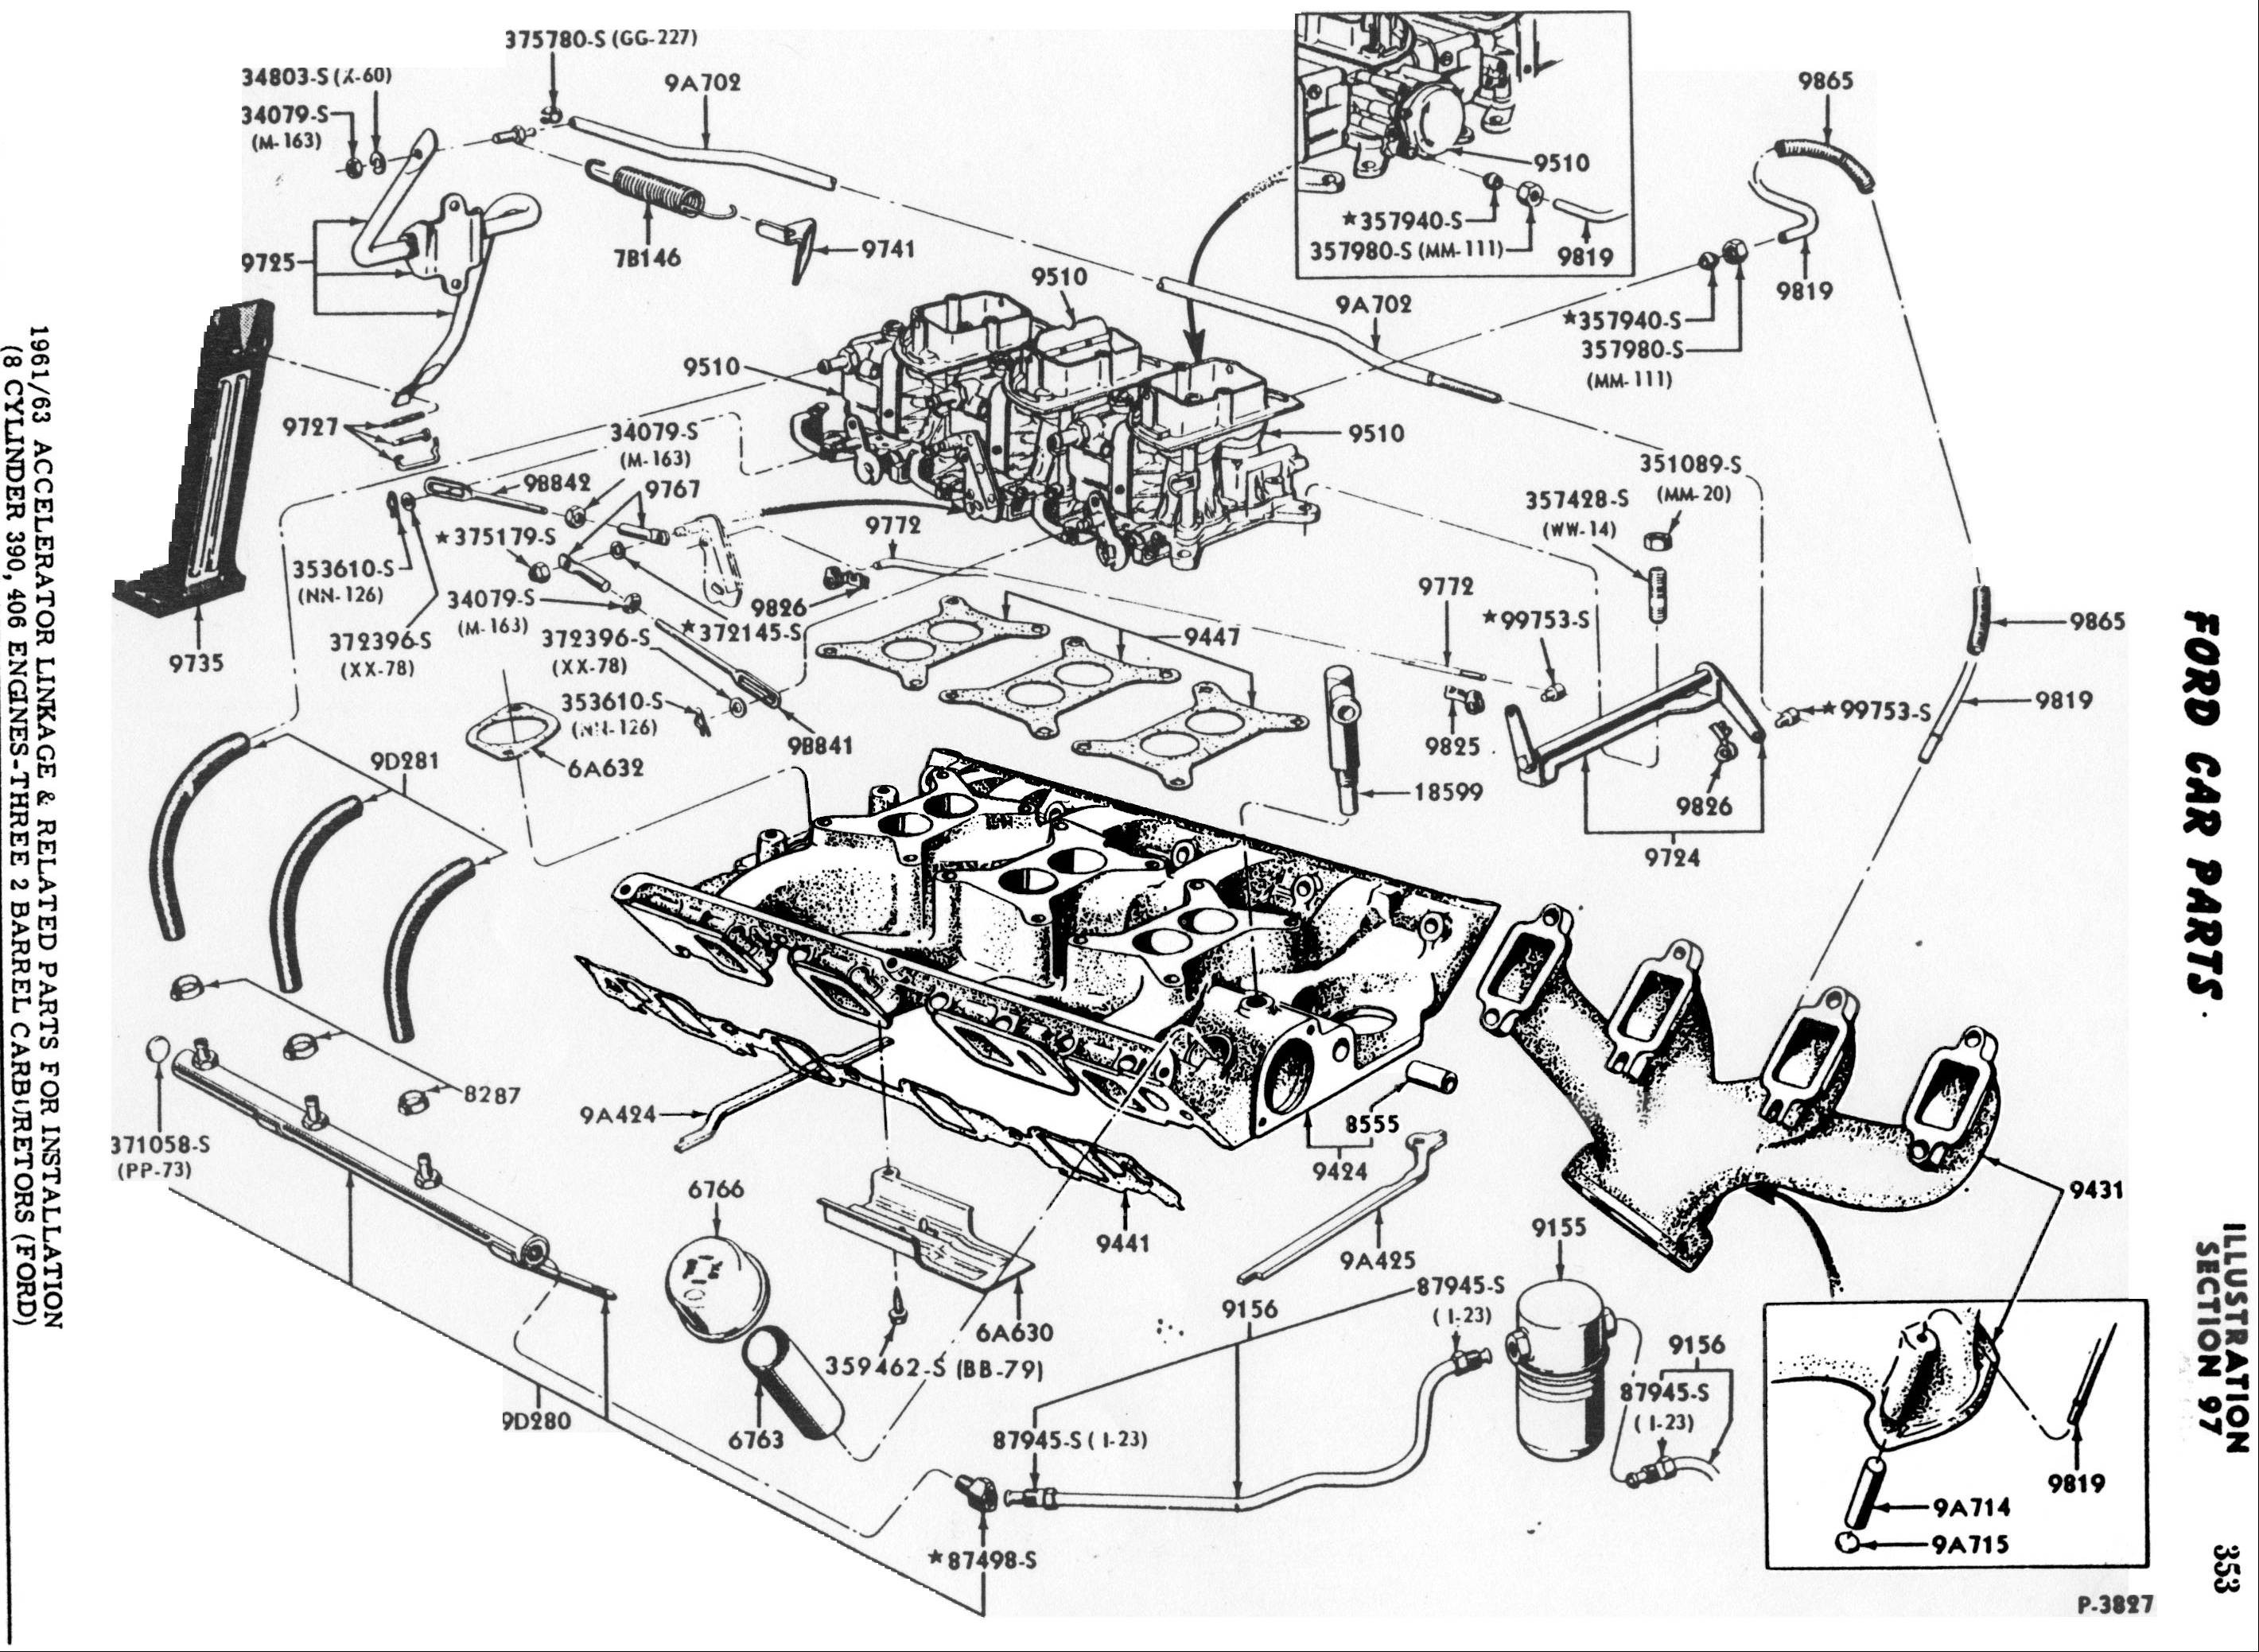 390 ford engine diagram 5 8 malawi24 de Piston Engine Diagram ford 390 engine parts diagram 10 10 yogabeone bs de u2022 rh 10 10 yogabeone bs de 351 ford engine parts diagram ford fe 390 engine diagram